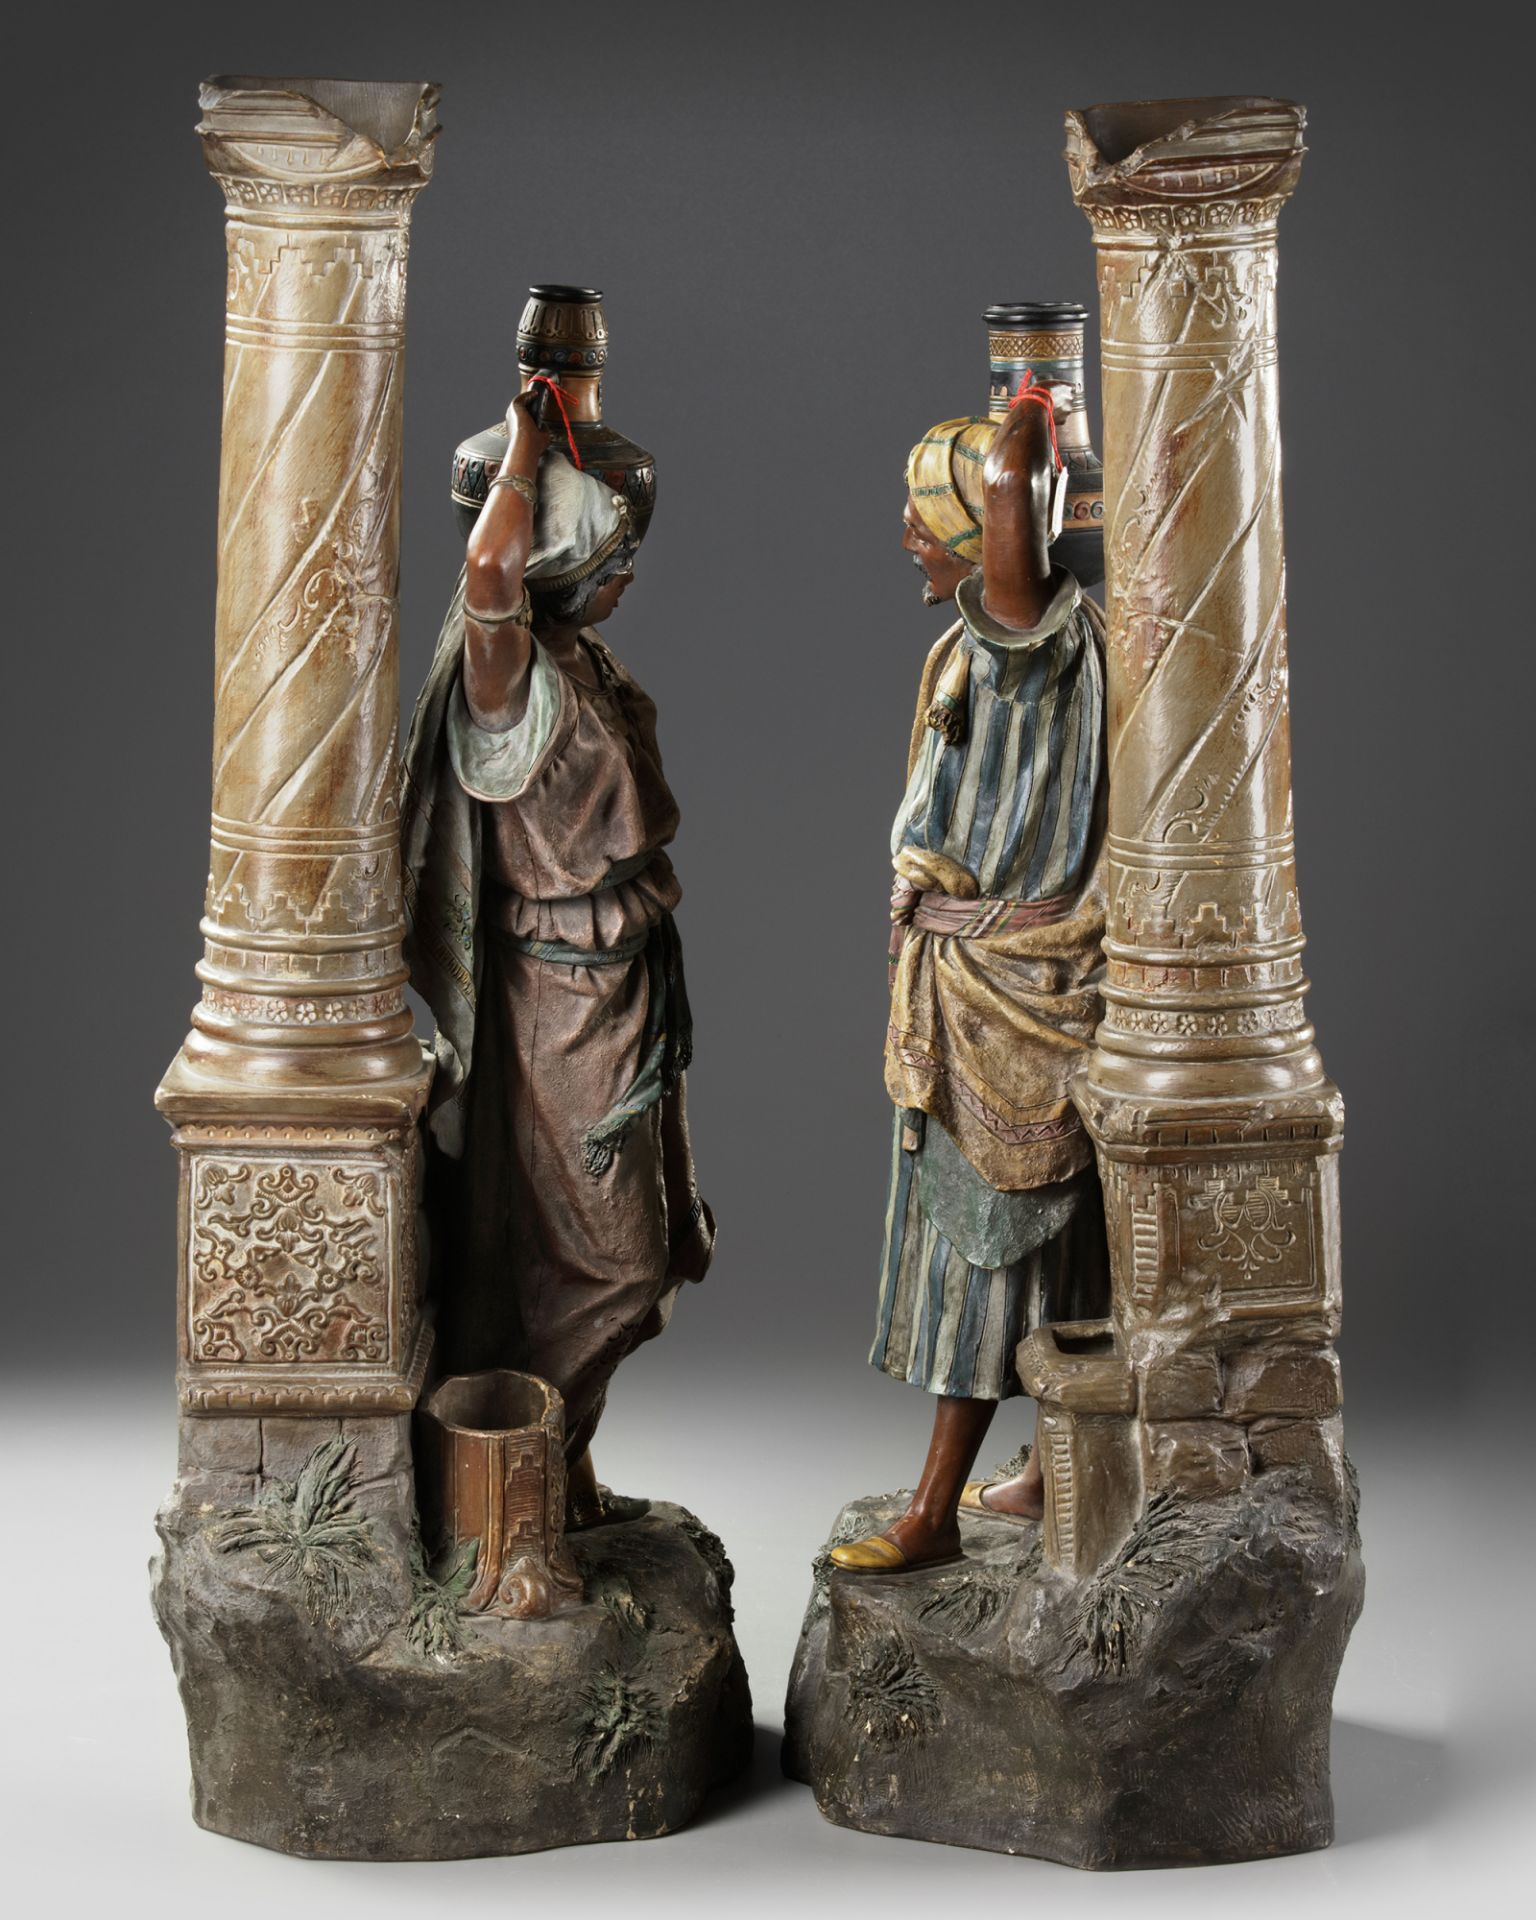 A PAIR OF AUSTRIAN 'ORIENTAL SCHOOL' STATUES, LATE 19TH CENTURY - Image 4 of 5